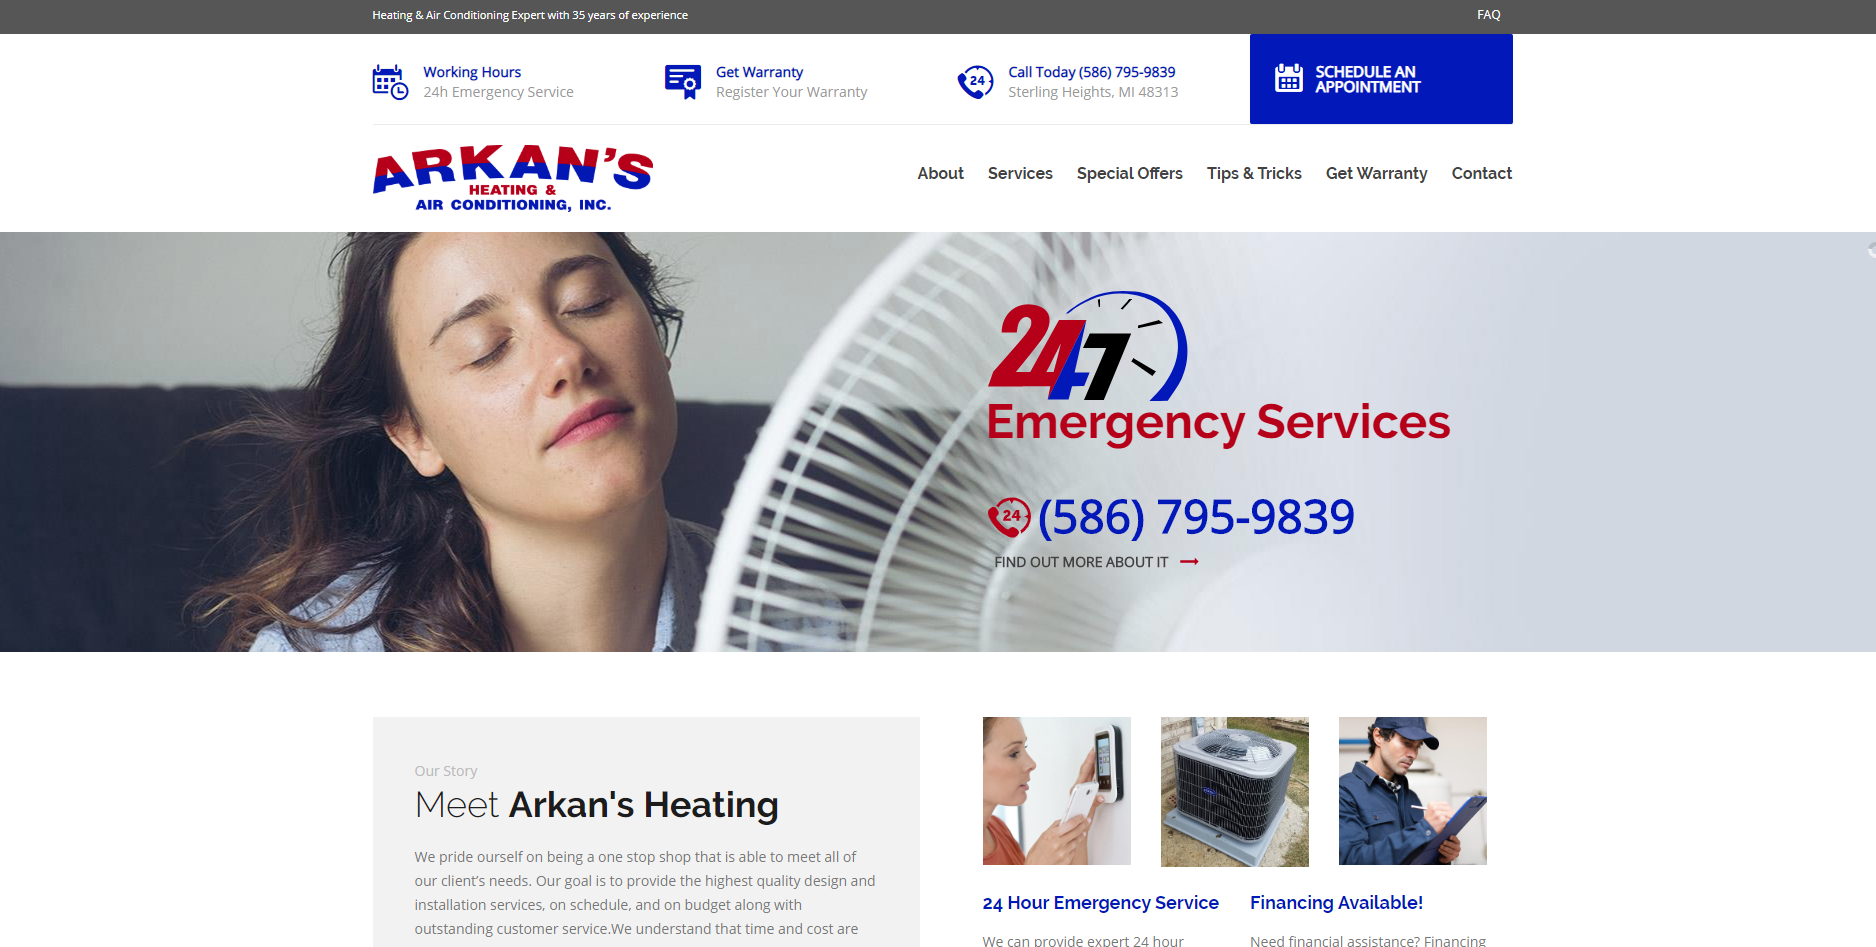 Arkan's Heating & Air Conditioning